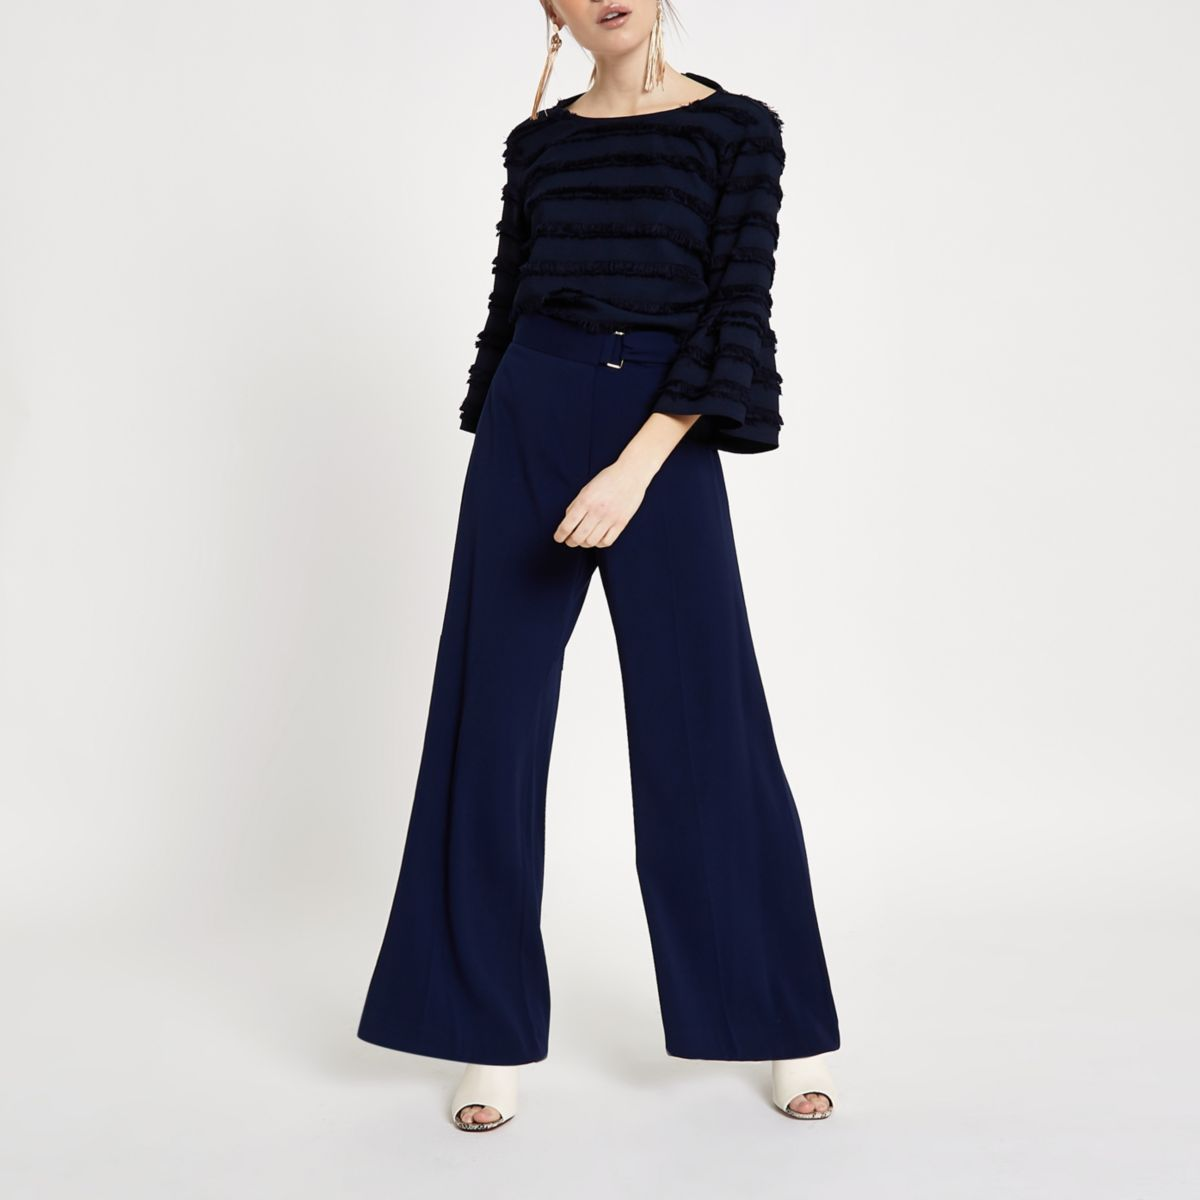 Petite navy belted wide leg pants